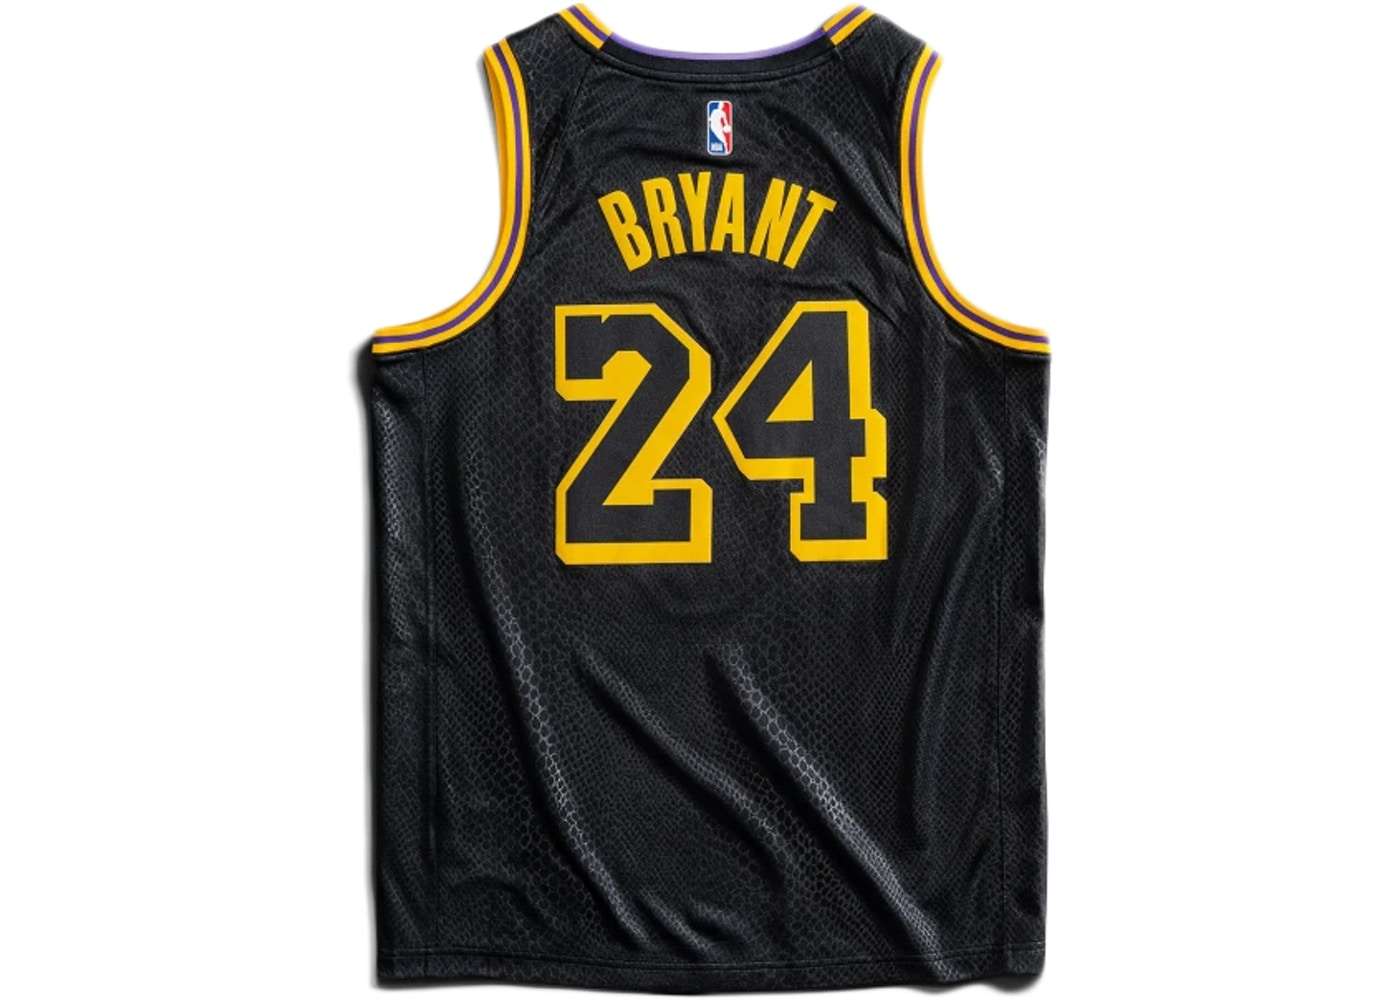 Nike Los Angeles Lakers Kobe Bryant Black Mamba City Edition Swingman Jersey Black Gold Ss20